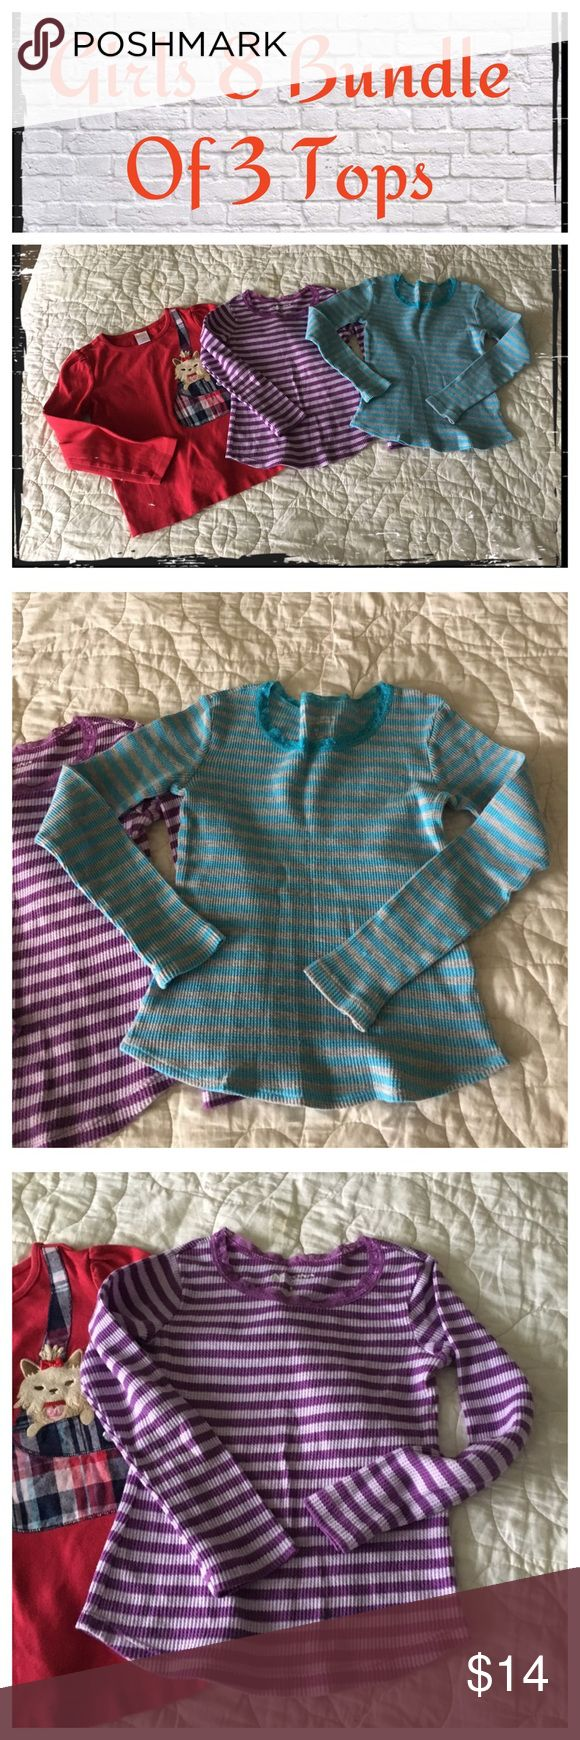 Girls Size 8 Bundle of 3 long sleeve tops Gently worn; normal wash wear. EUC.                                                                                            ❇️ Reasonable Offers Only Please ❇️ Smoke and pet free ❇️ If this is a bundle, I WILL NOT break it up and sell    separately ❇️ I do not model anything; everything looks different on everyone and I don't want to Jade that. I will provide measurements if needed.  ❇️ Please do not hesitate to ask questions, 👍.         ❇️ NO…